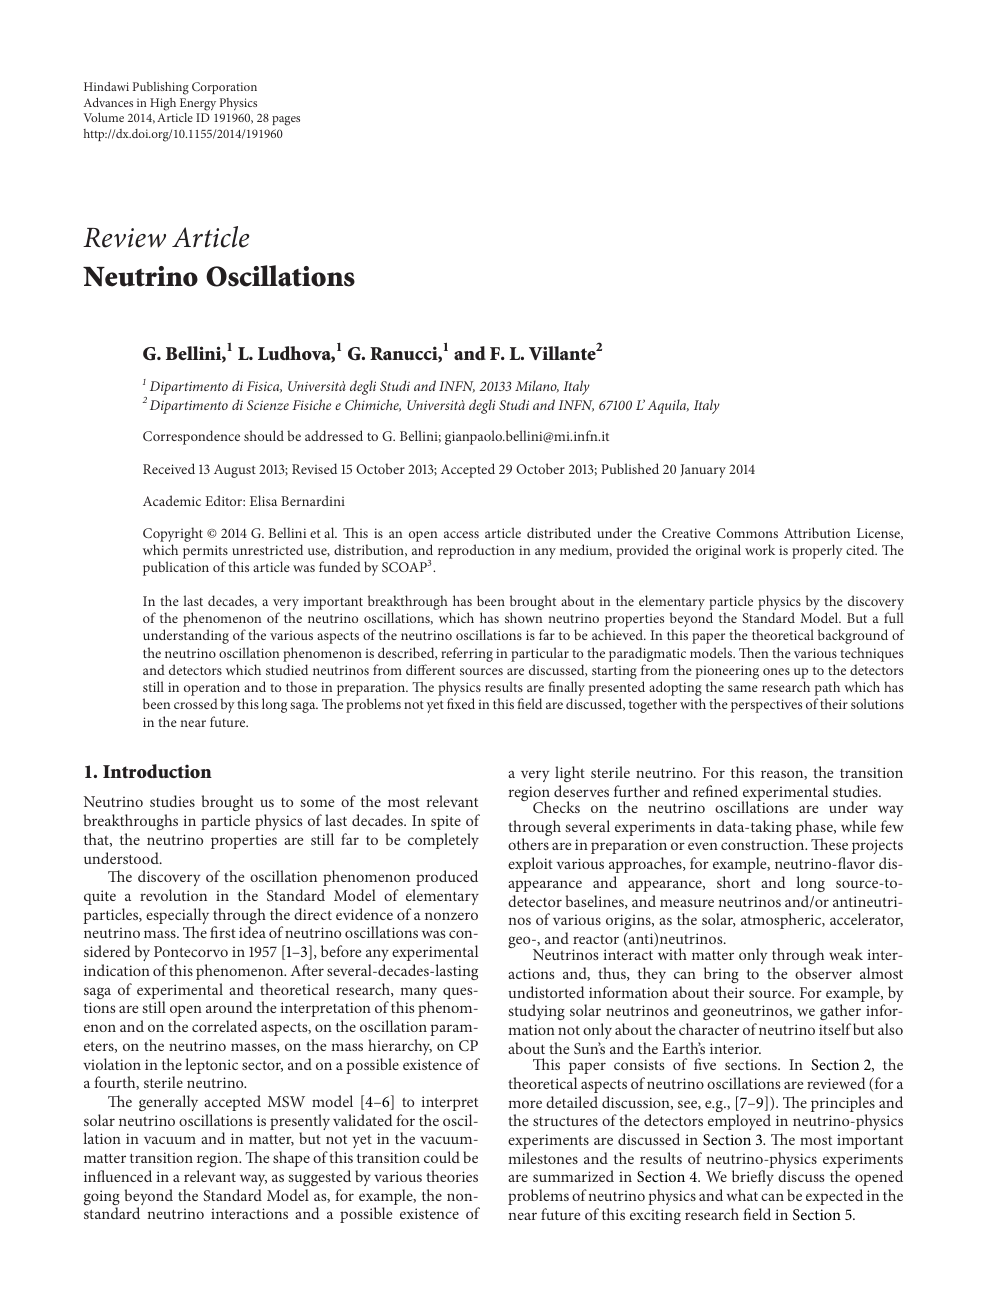 Neutrino Oscillations – topic of research paper in Physical